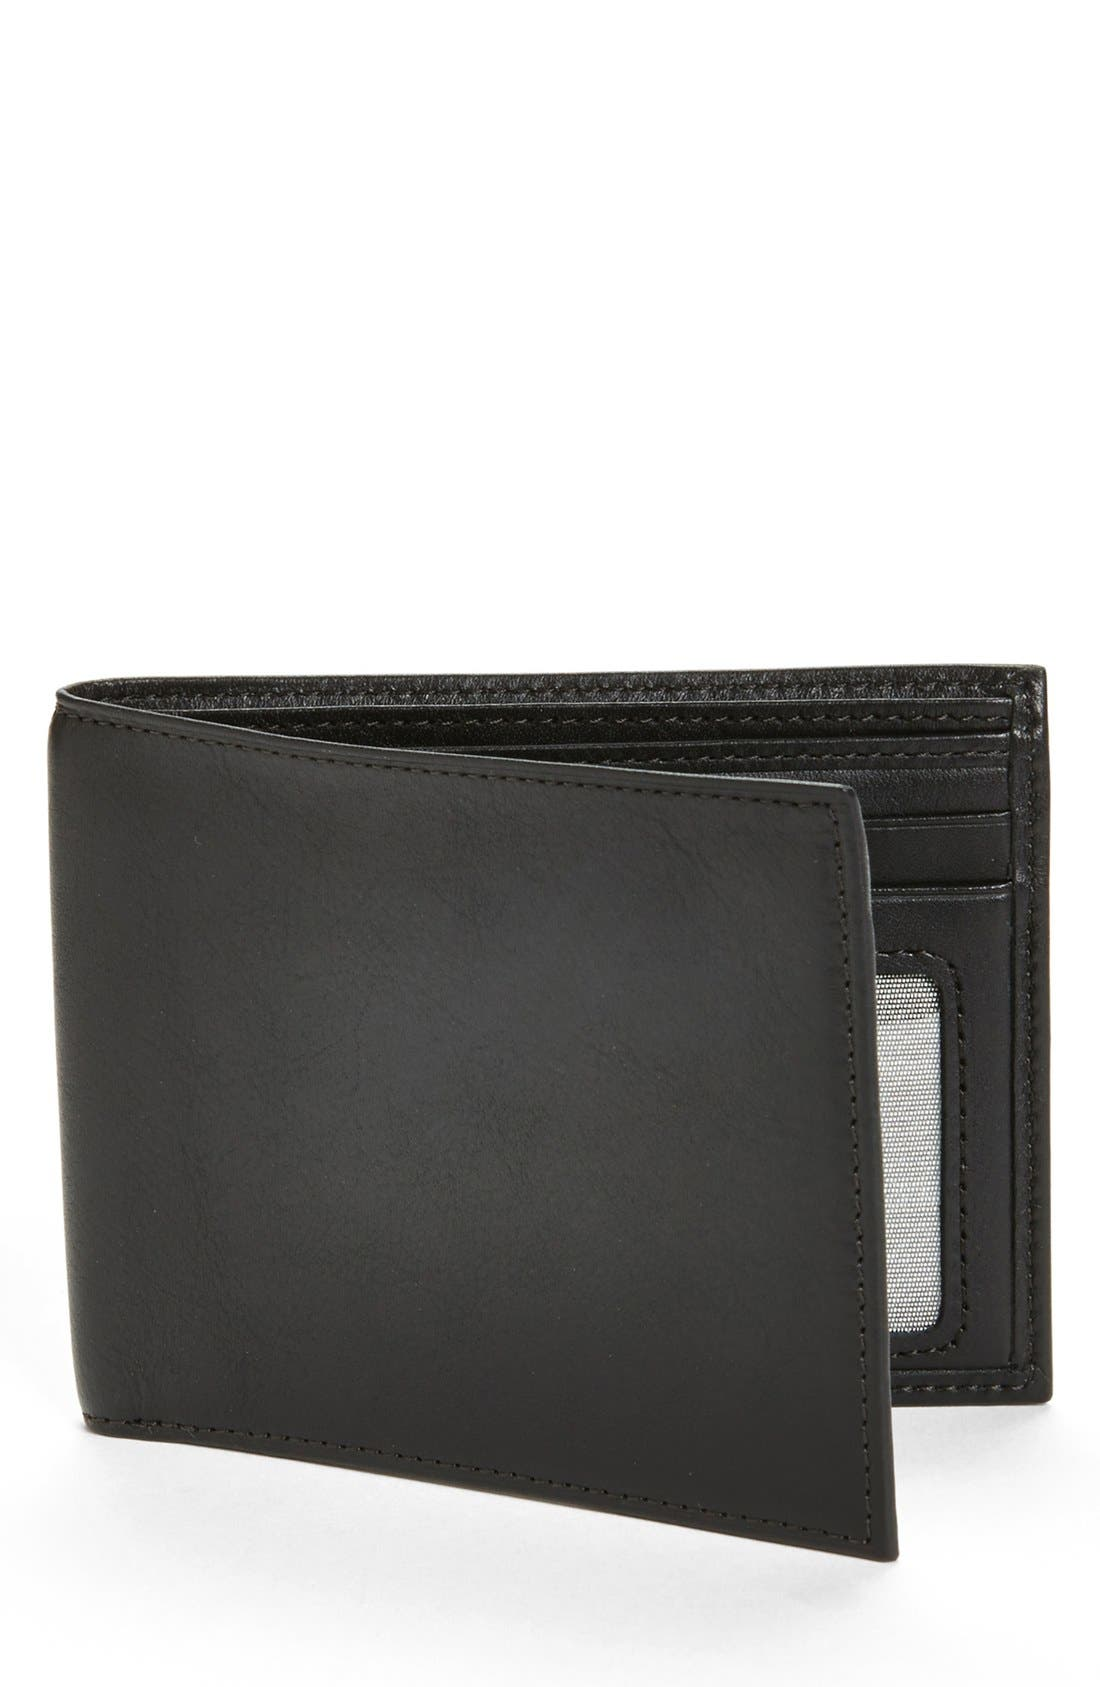 'Executive ID' Nappa Leather Wallet,                         Main,                         color, BLACK